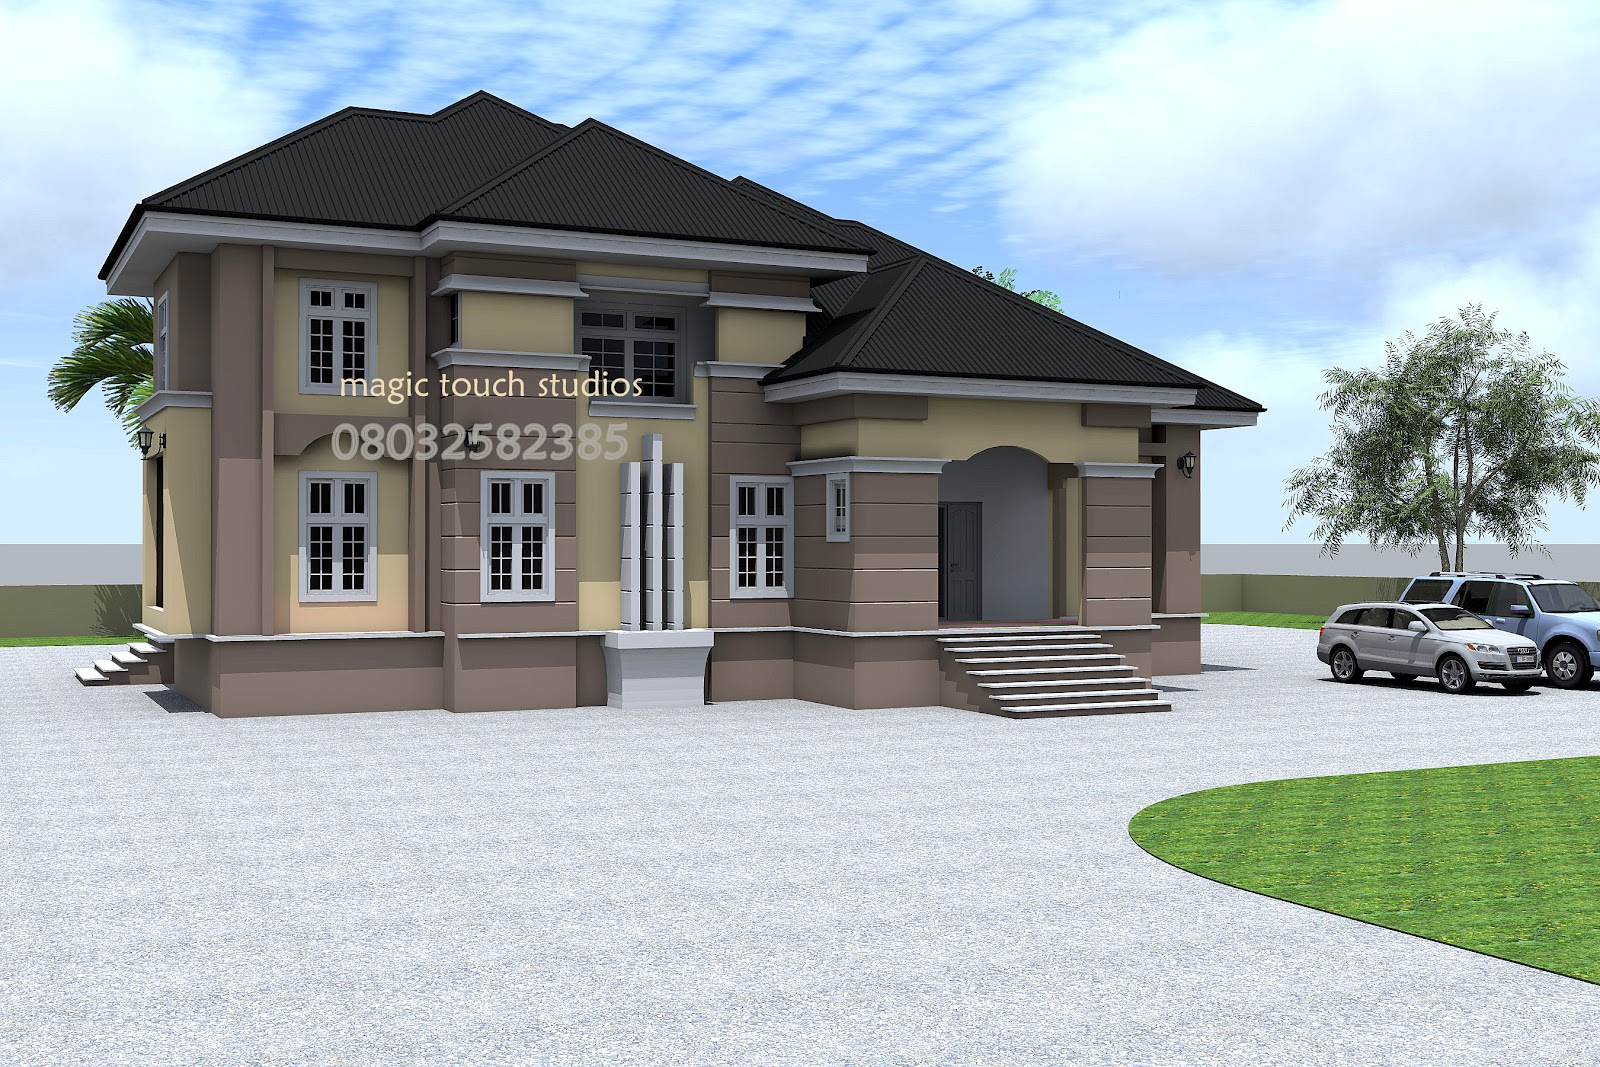 5 bedroom split level bungalow residential homes and - Bungalow architektur ...